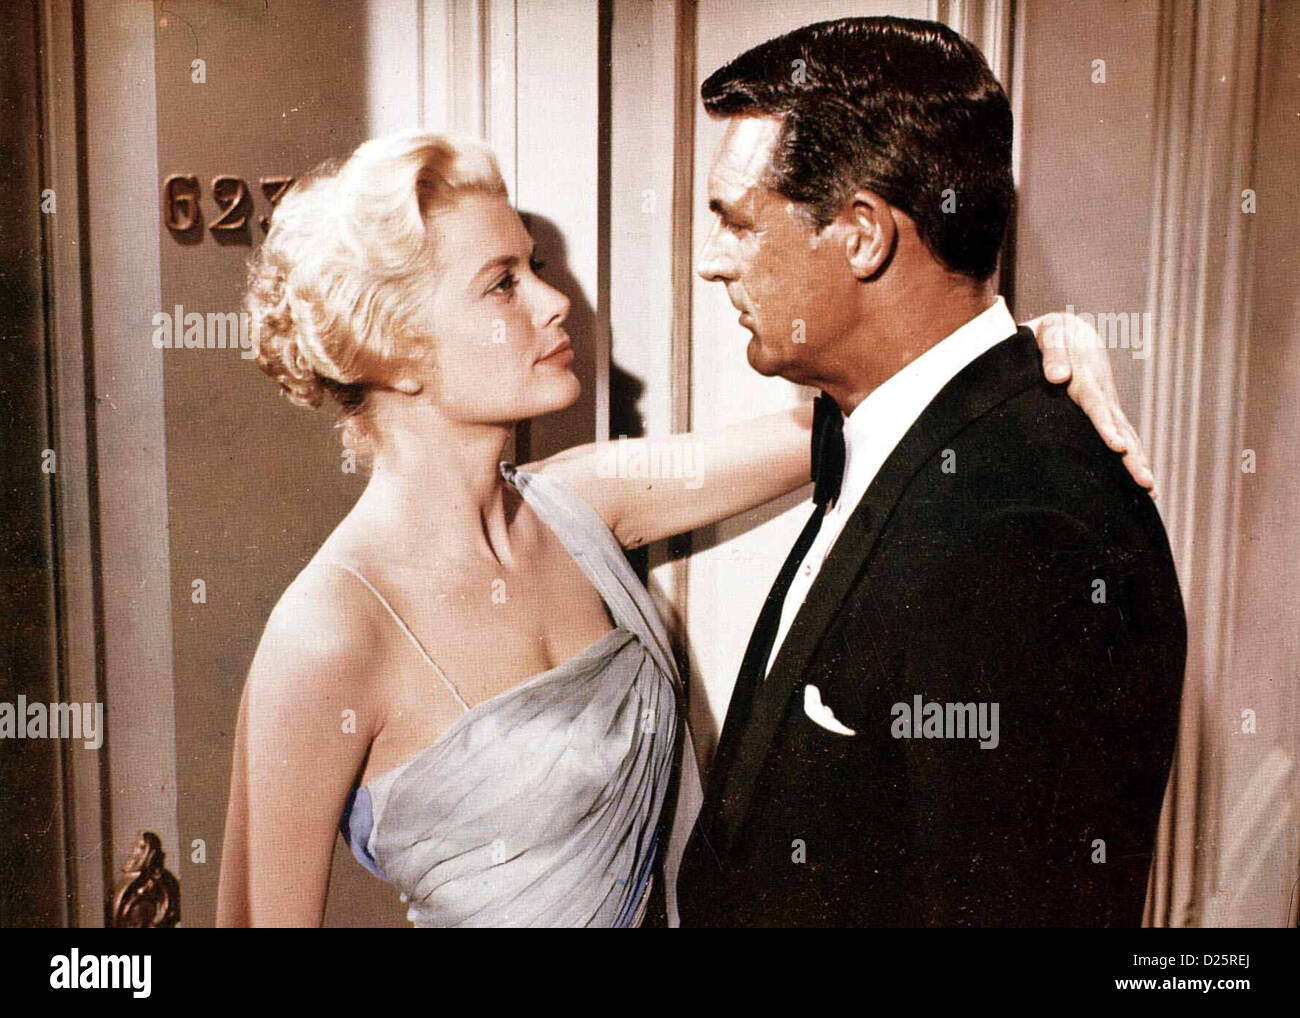 ueber den daechern von nizza to catch thief grace kelly cary grant stock photo 52988618 alamy. Black Bedroom Furniture Sets. Home Design Ideas